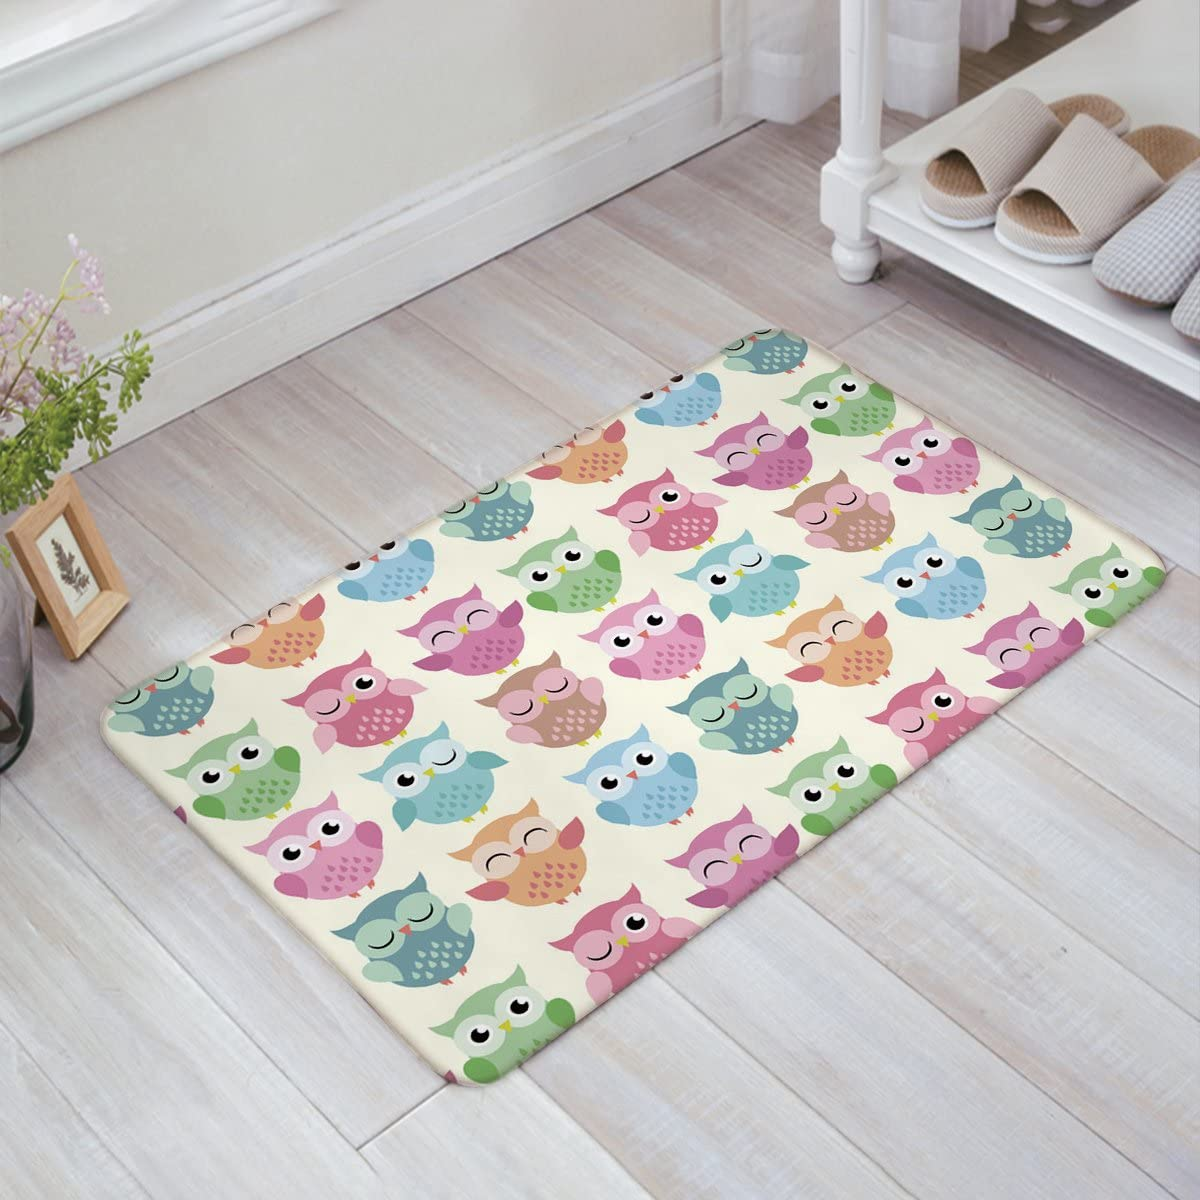 Cute Animals Colorful Owl Fabric Door Mat Rug Indoor Outdoor Front Door Shower Bathroom Doormat, Non-Slip Doormats, 18-Inch by 30-Inch